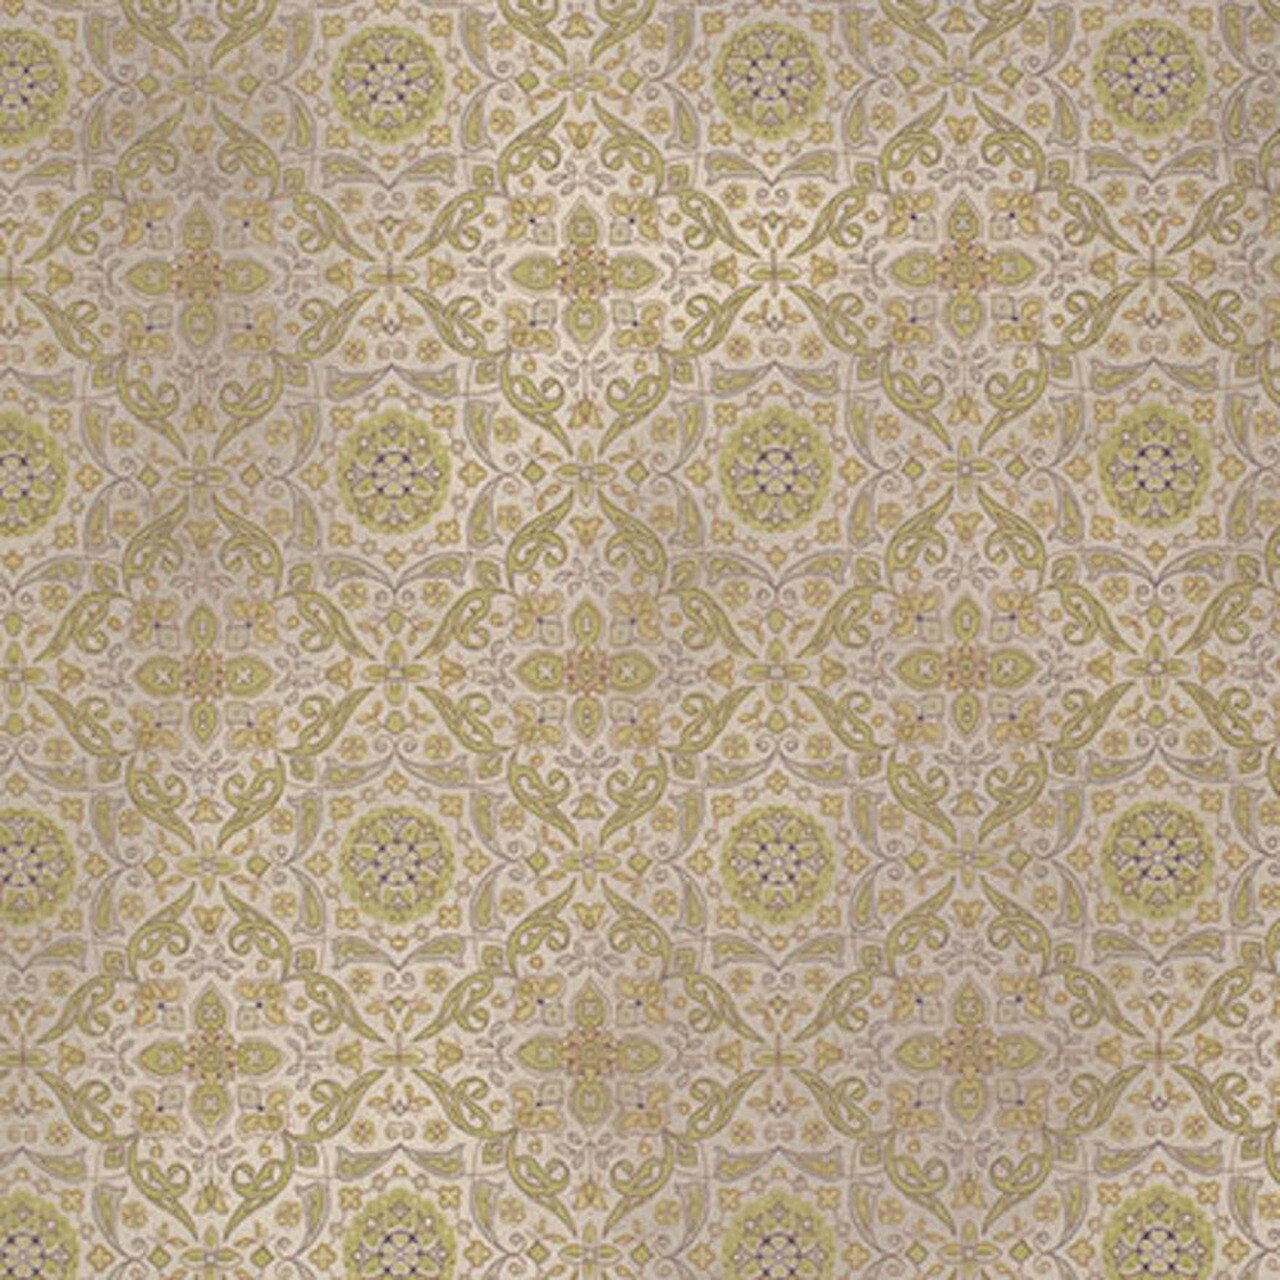 Eclectic Elements cotton fabric by Tim Holtz for Free Spirit PWTH032green